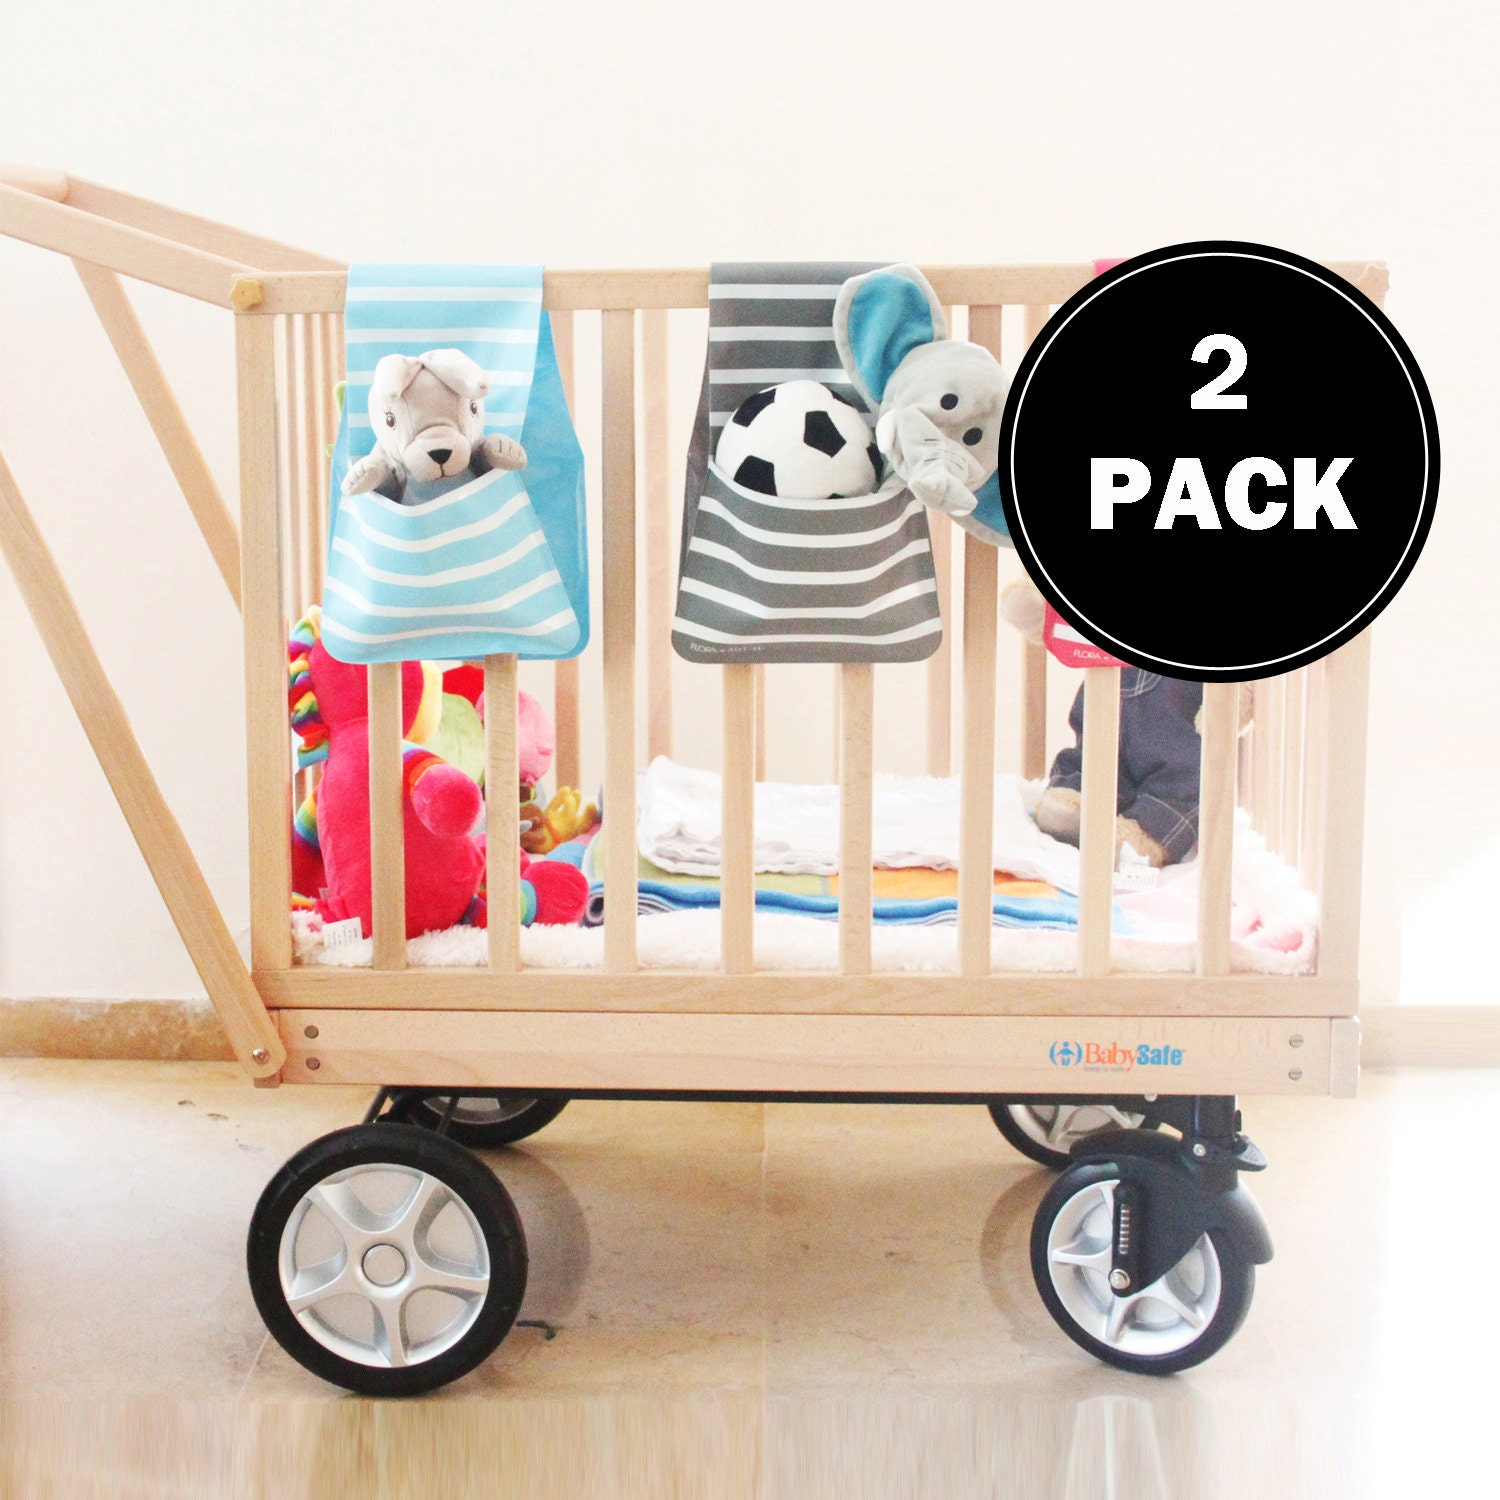 Baby crib for sale malaysia - Baby Crib Organizer Baby Stroller Bag Playpen Storage Organize Toys Multipurpose 2 Pack Double Pockets 14 Colors 6 Patterns Sale